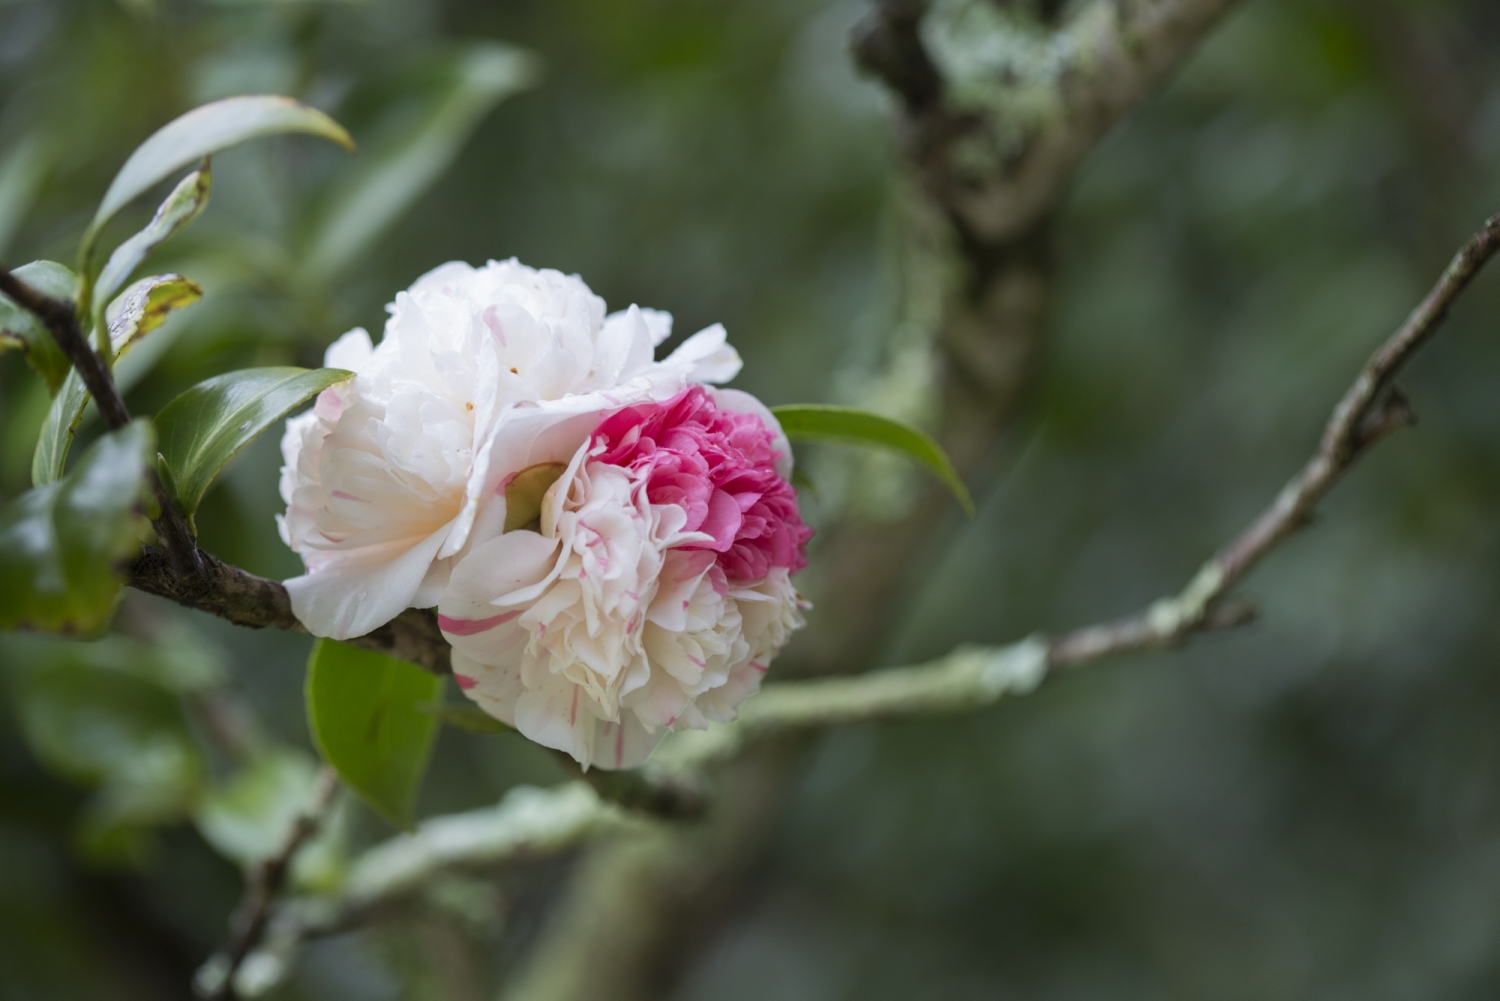 close up of an Aspasia Macarthur camellia bloom at Vaucluse House